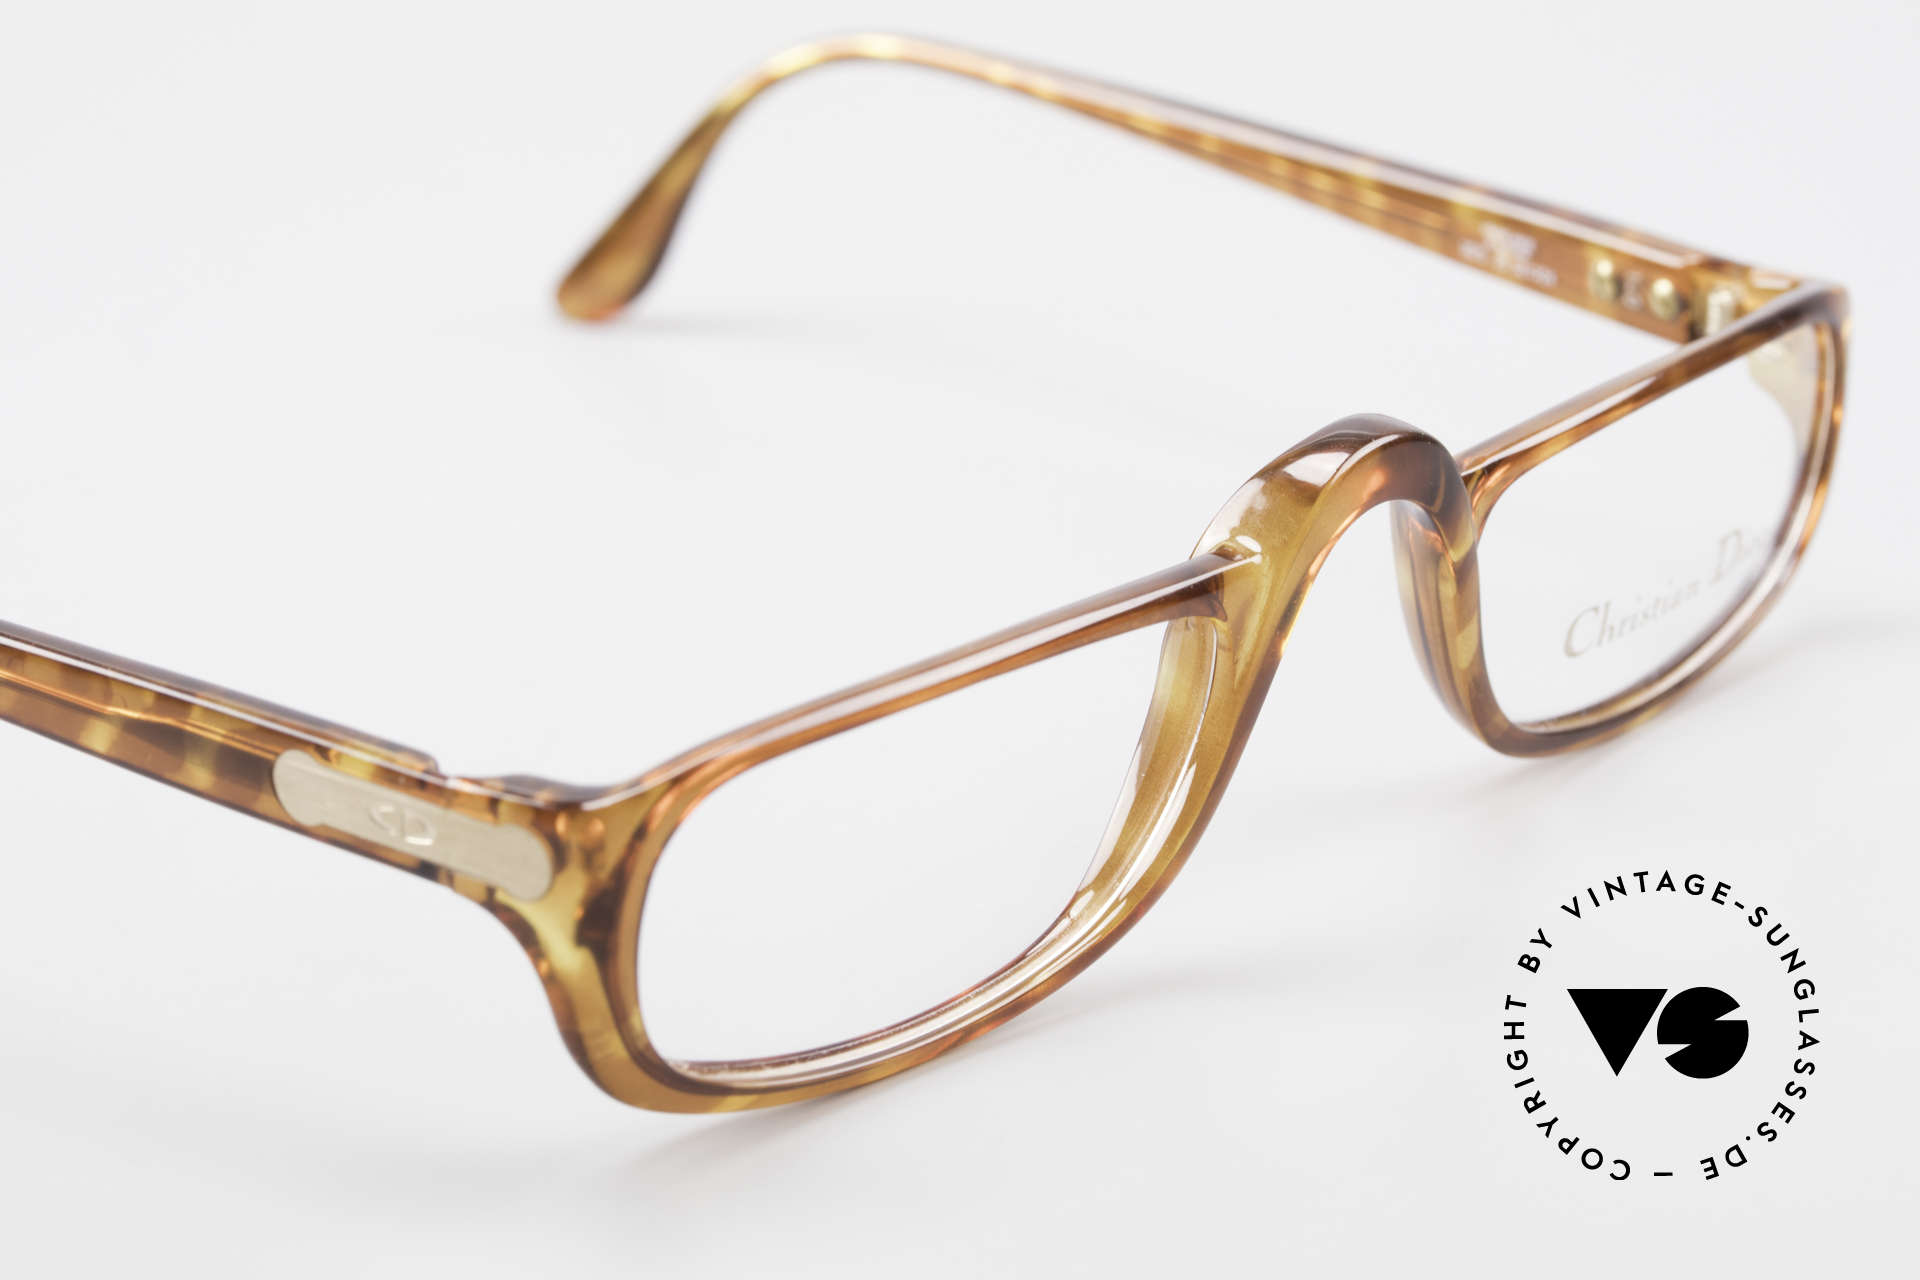 Christian Dior 2075 Reading Glasses Optyl Large, unique frame pattern / coloring; size 52-24 (L size), Made for Men and Women